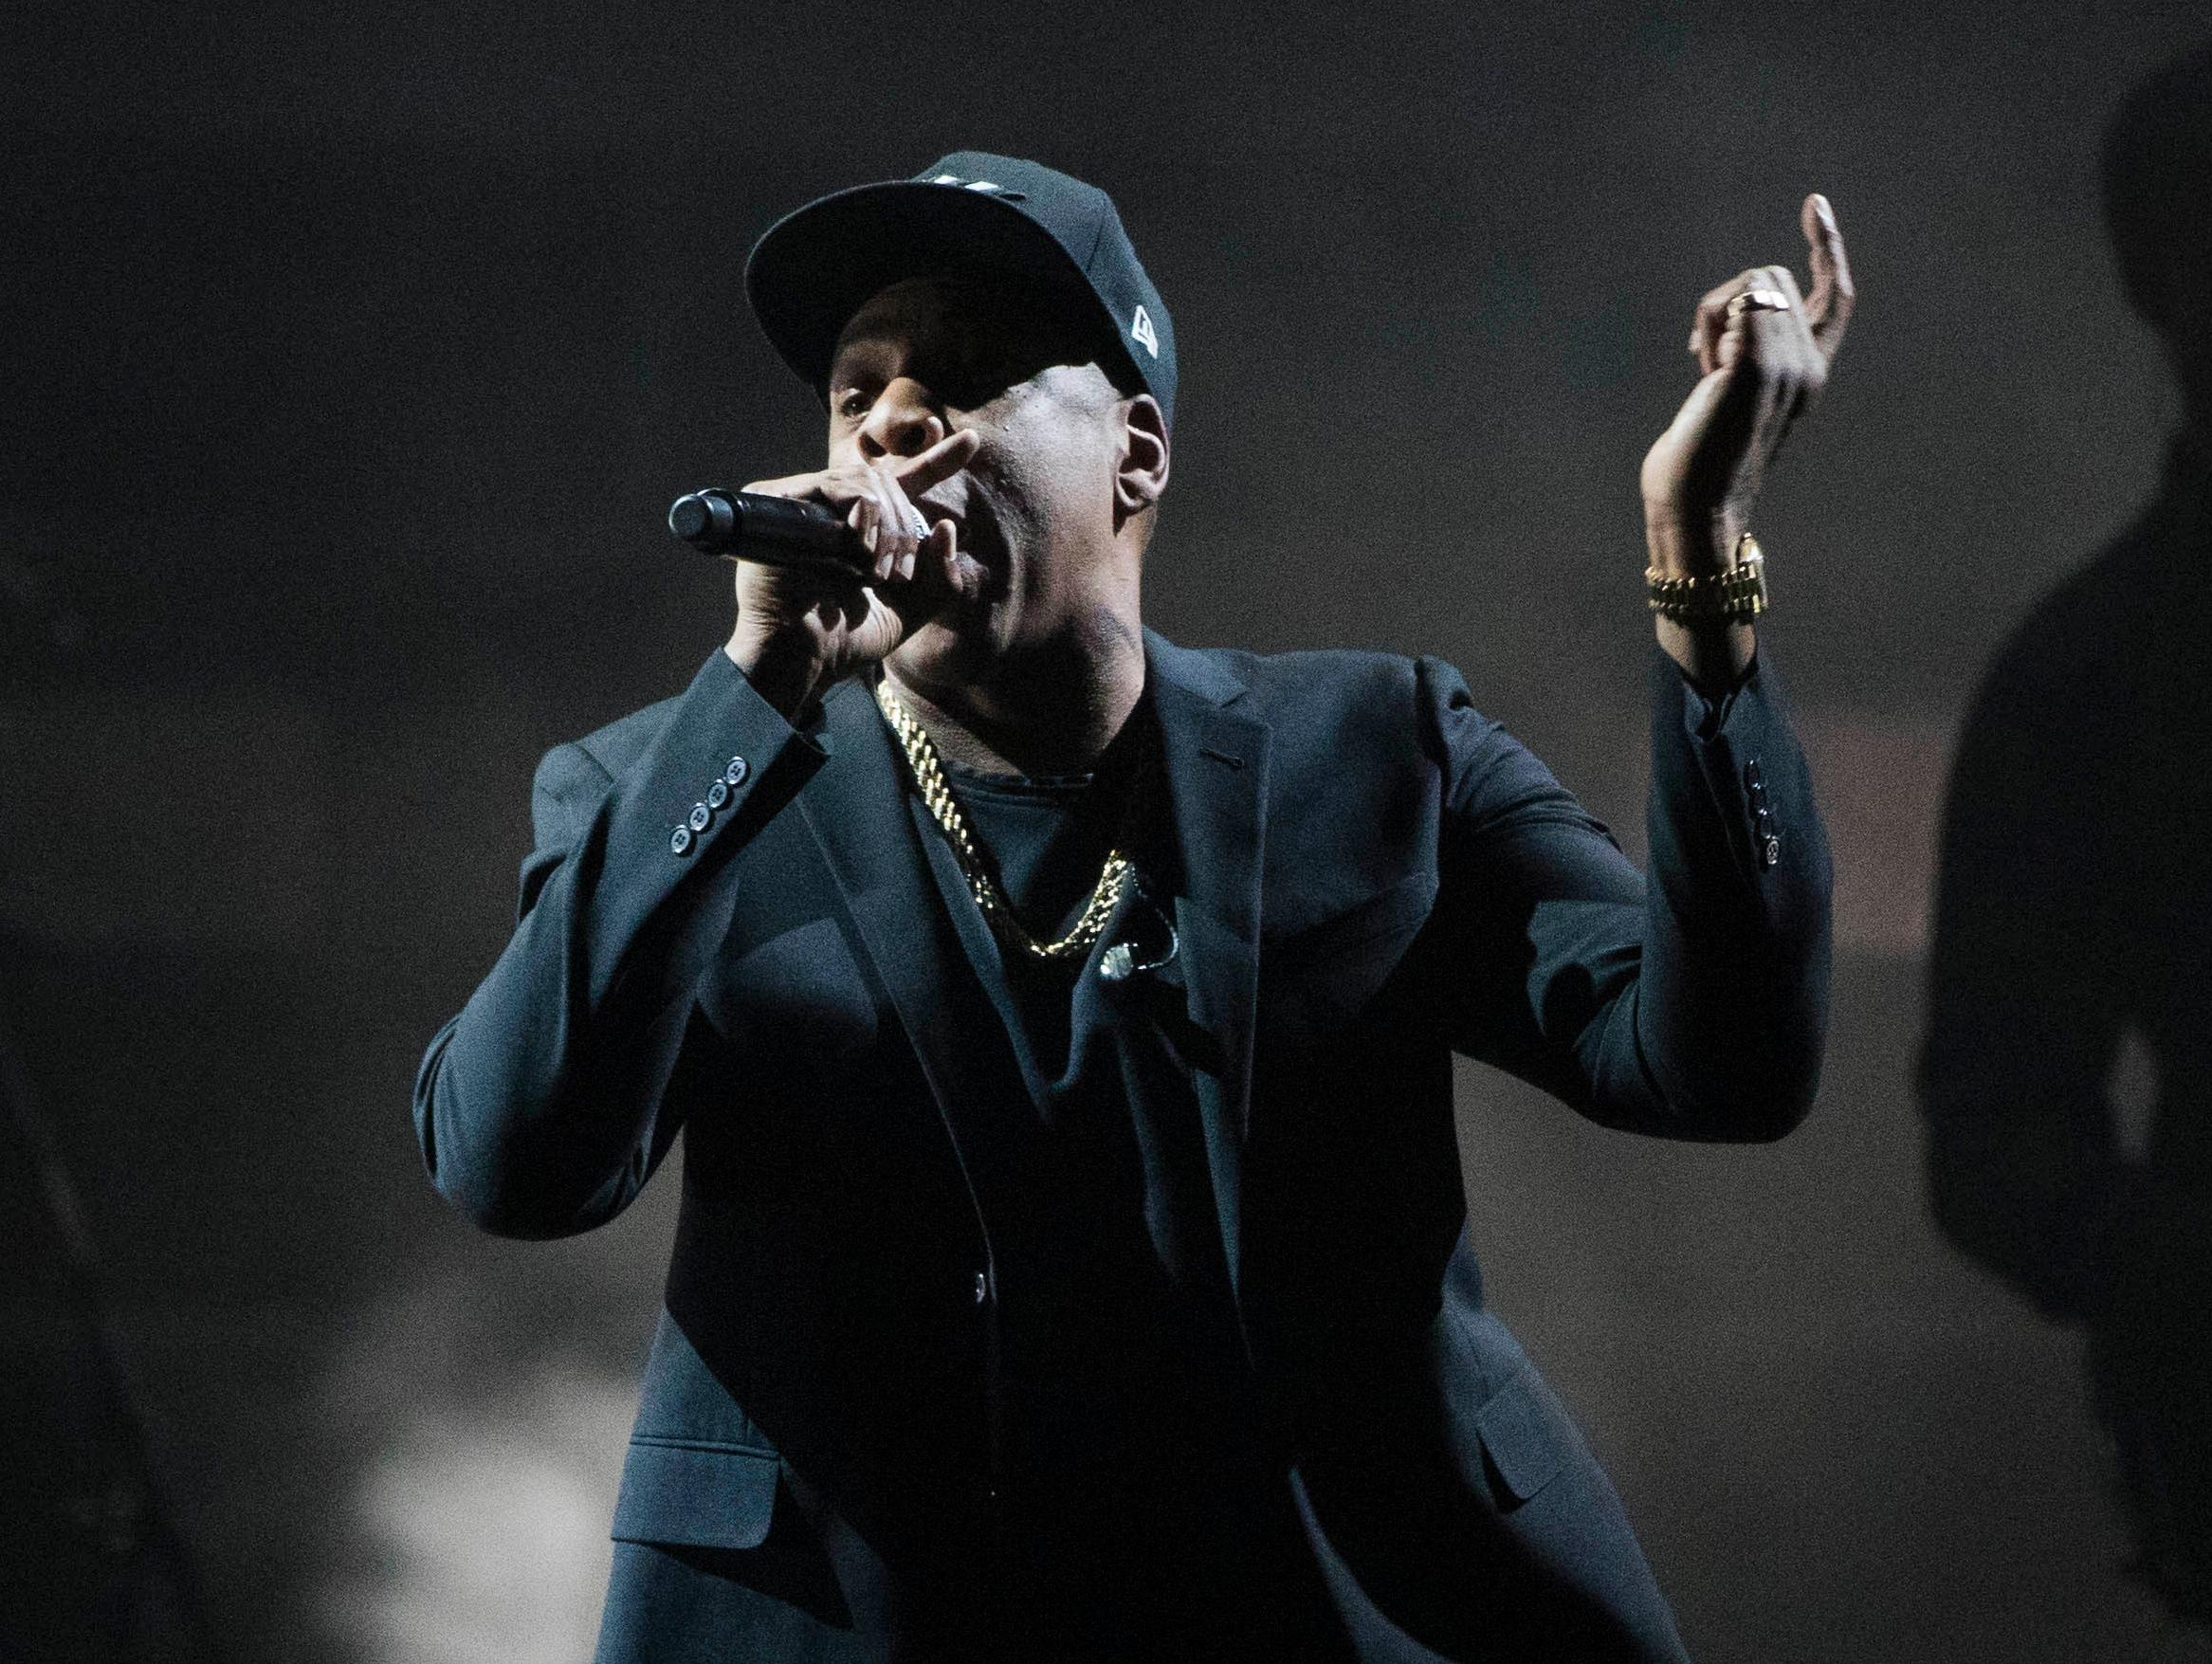 FILE- In this Nov. 4, 2016, file photo, Jay Z performs during a campaign rally for Democratic presidential candidate Hillary Clinton in Cleveland. Jay Z has signed a $200 million, 10-year deal with tour promoter Live Nation. (AP Photo/Matt Rourke, File)